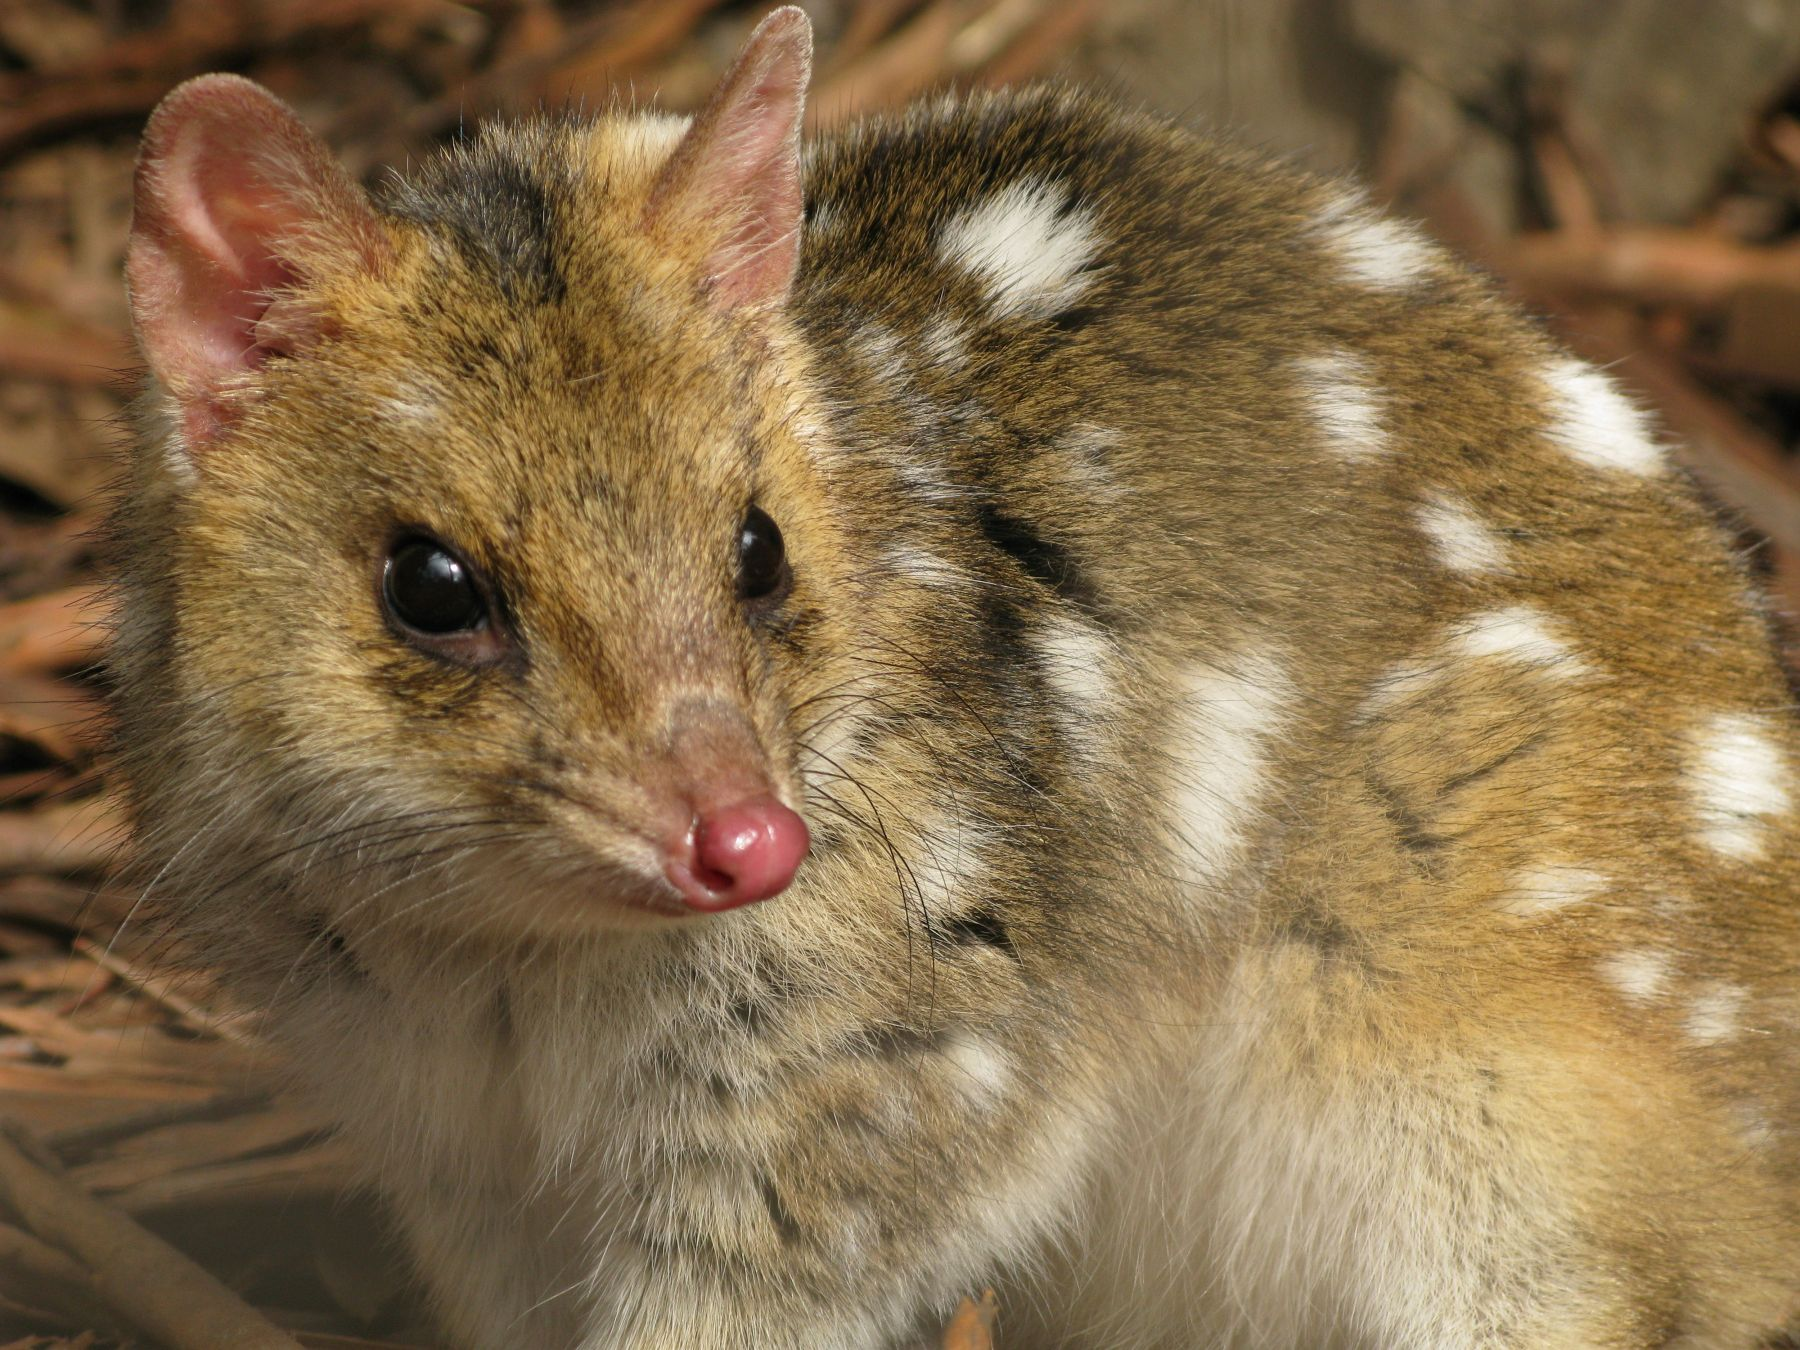 Eastern quolls haven't been seen on the Australian mainland for over half a century. However, thanks to a project that ...